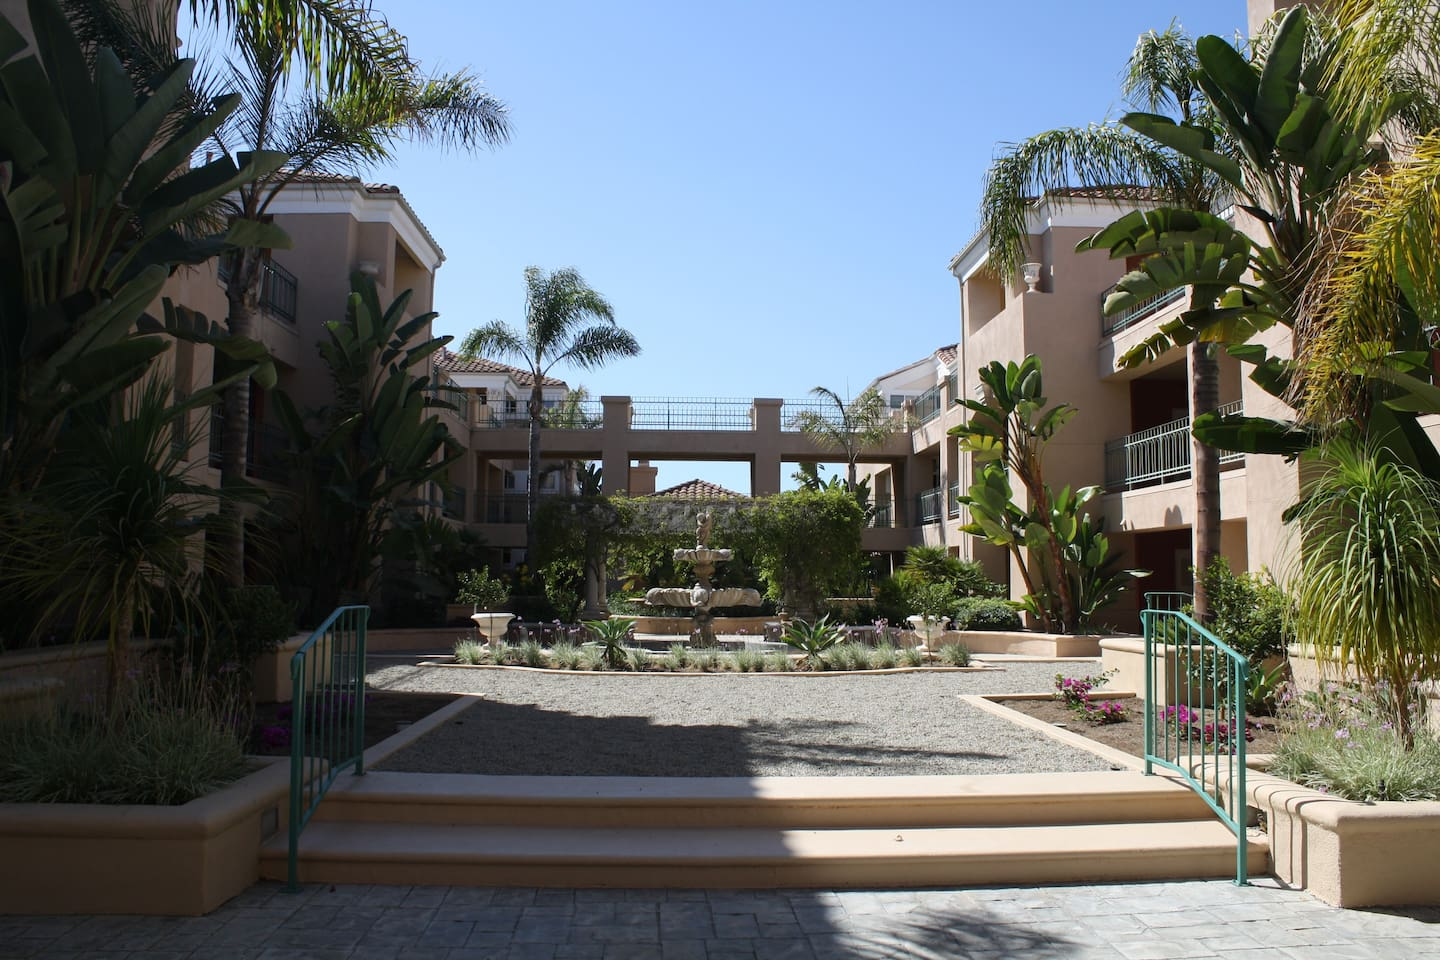 Beautiful courtyard of condo complex, safe, quiet and relaxing